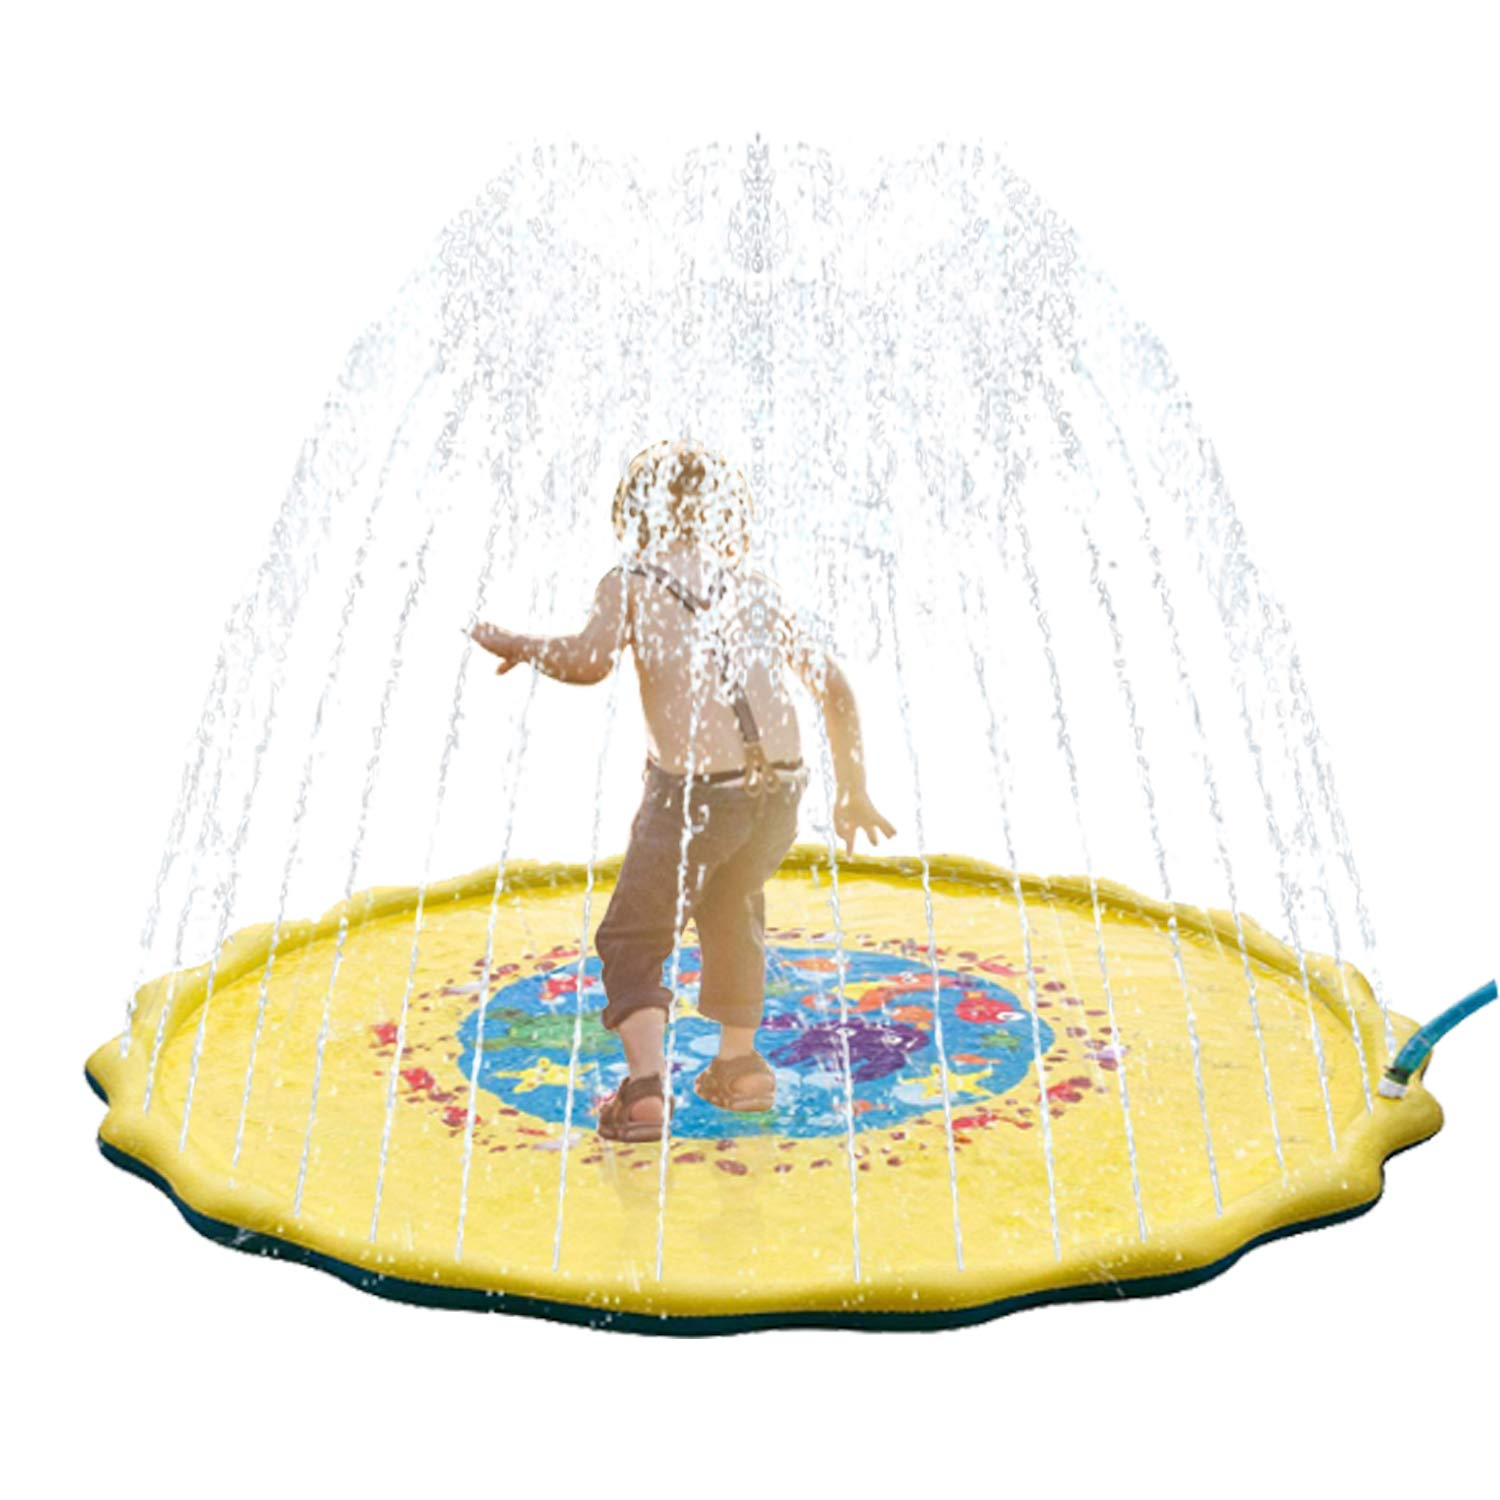 Issten Sprinkle and Splash Play Mat Toy for Kids,68'' Outdoor Inflatable Sprinkler Pad Water Toys Summer Swimming Party Beach Pool Water Play Toys for Children Toddler Babie Family Pet